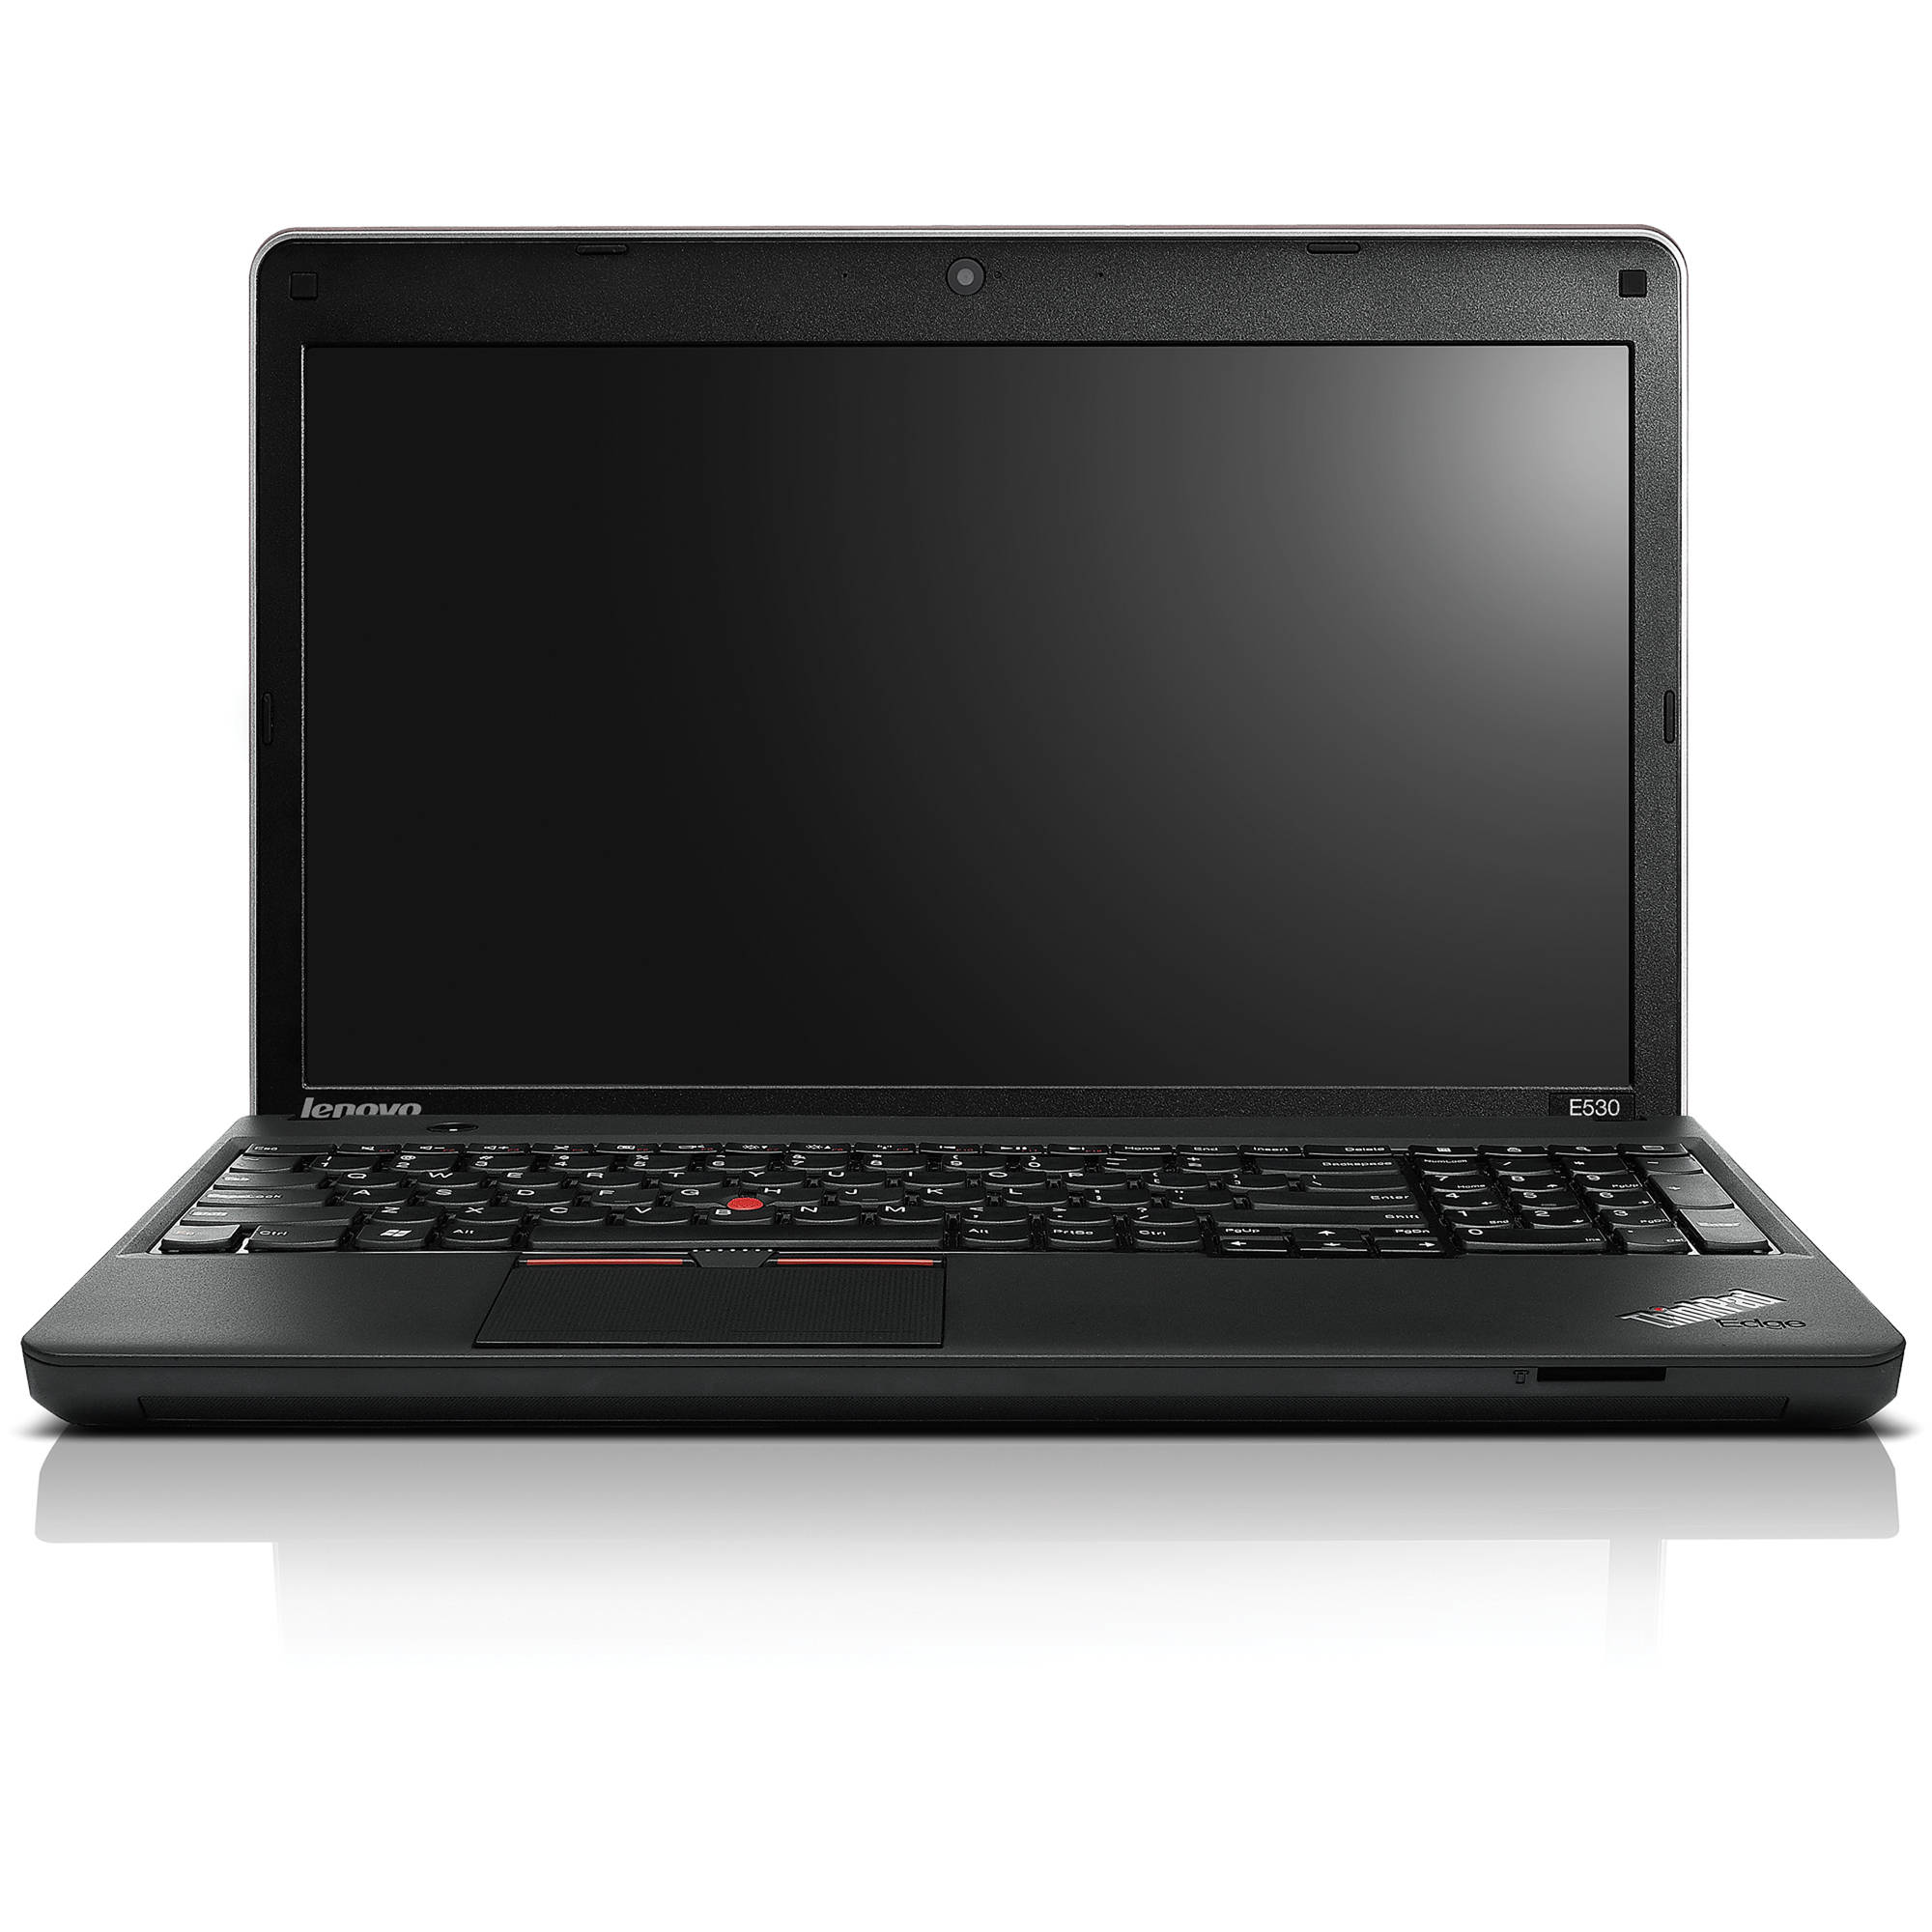 Lenovo Thinkpad Edge E530 TrueSuite Fingerprint Reader Drivers PC